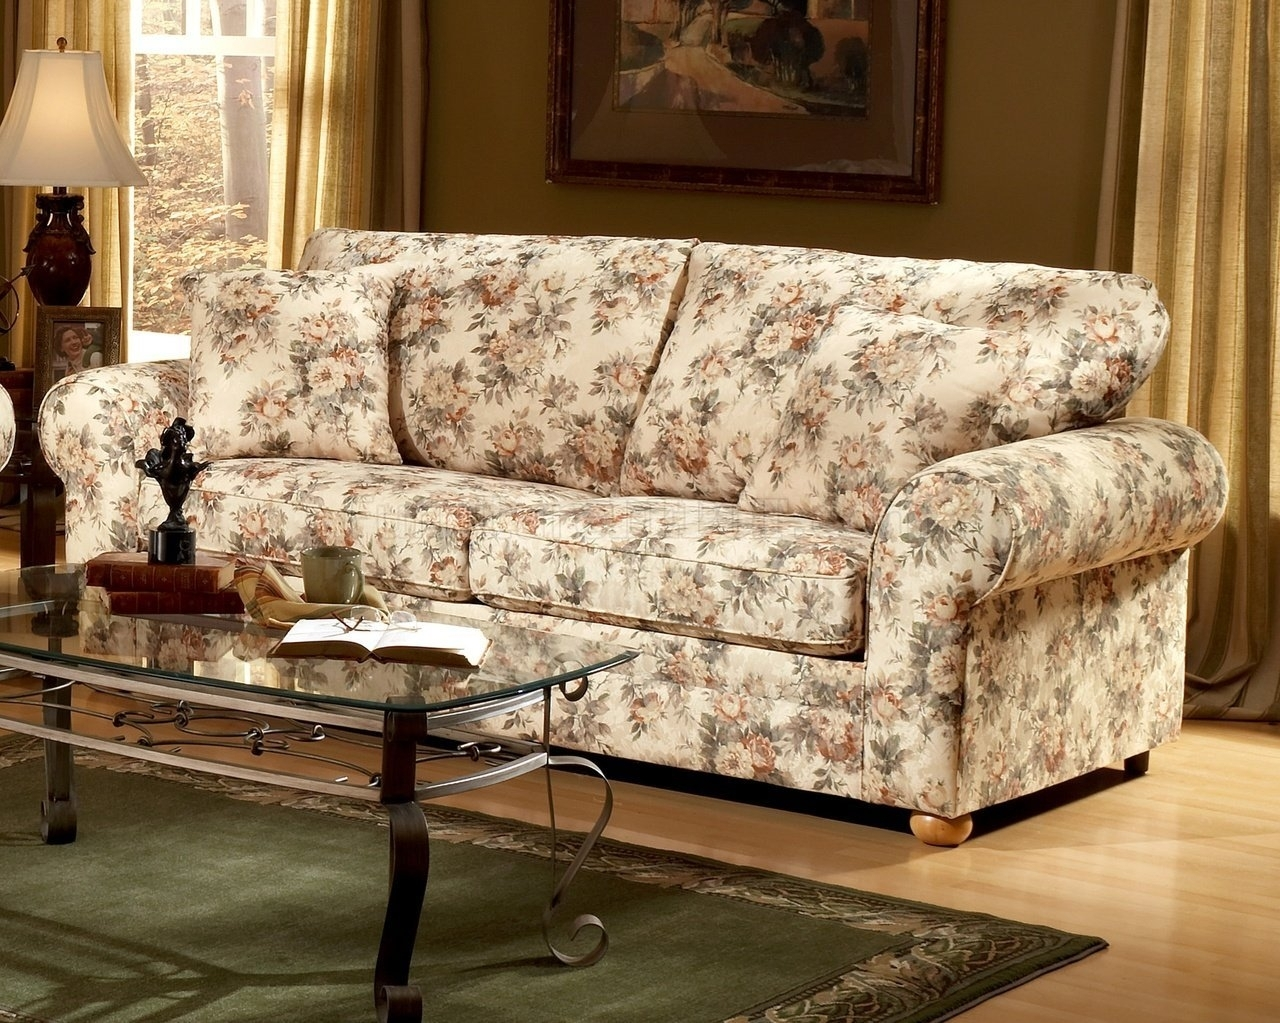 Floral Sofas And Chairs With Regard To Well Known Furniture: Beautiful Flowered Couches For Your Living Room Design (View 14 of 15)